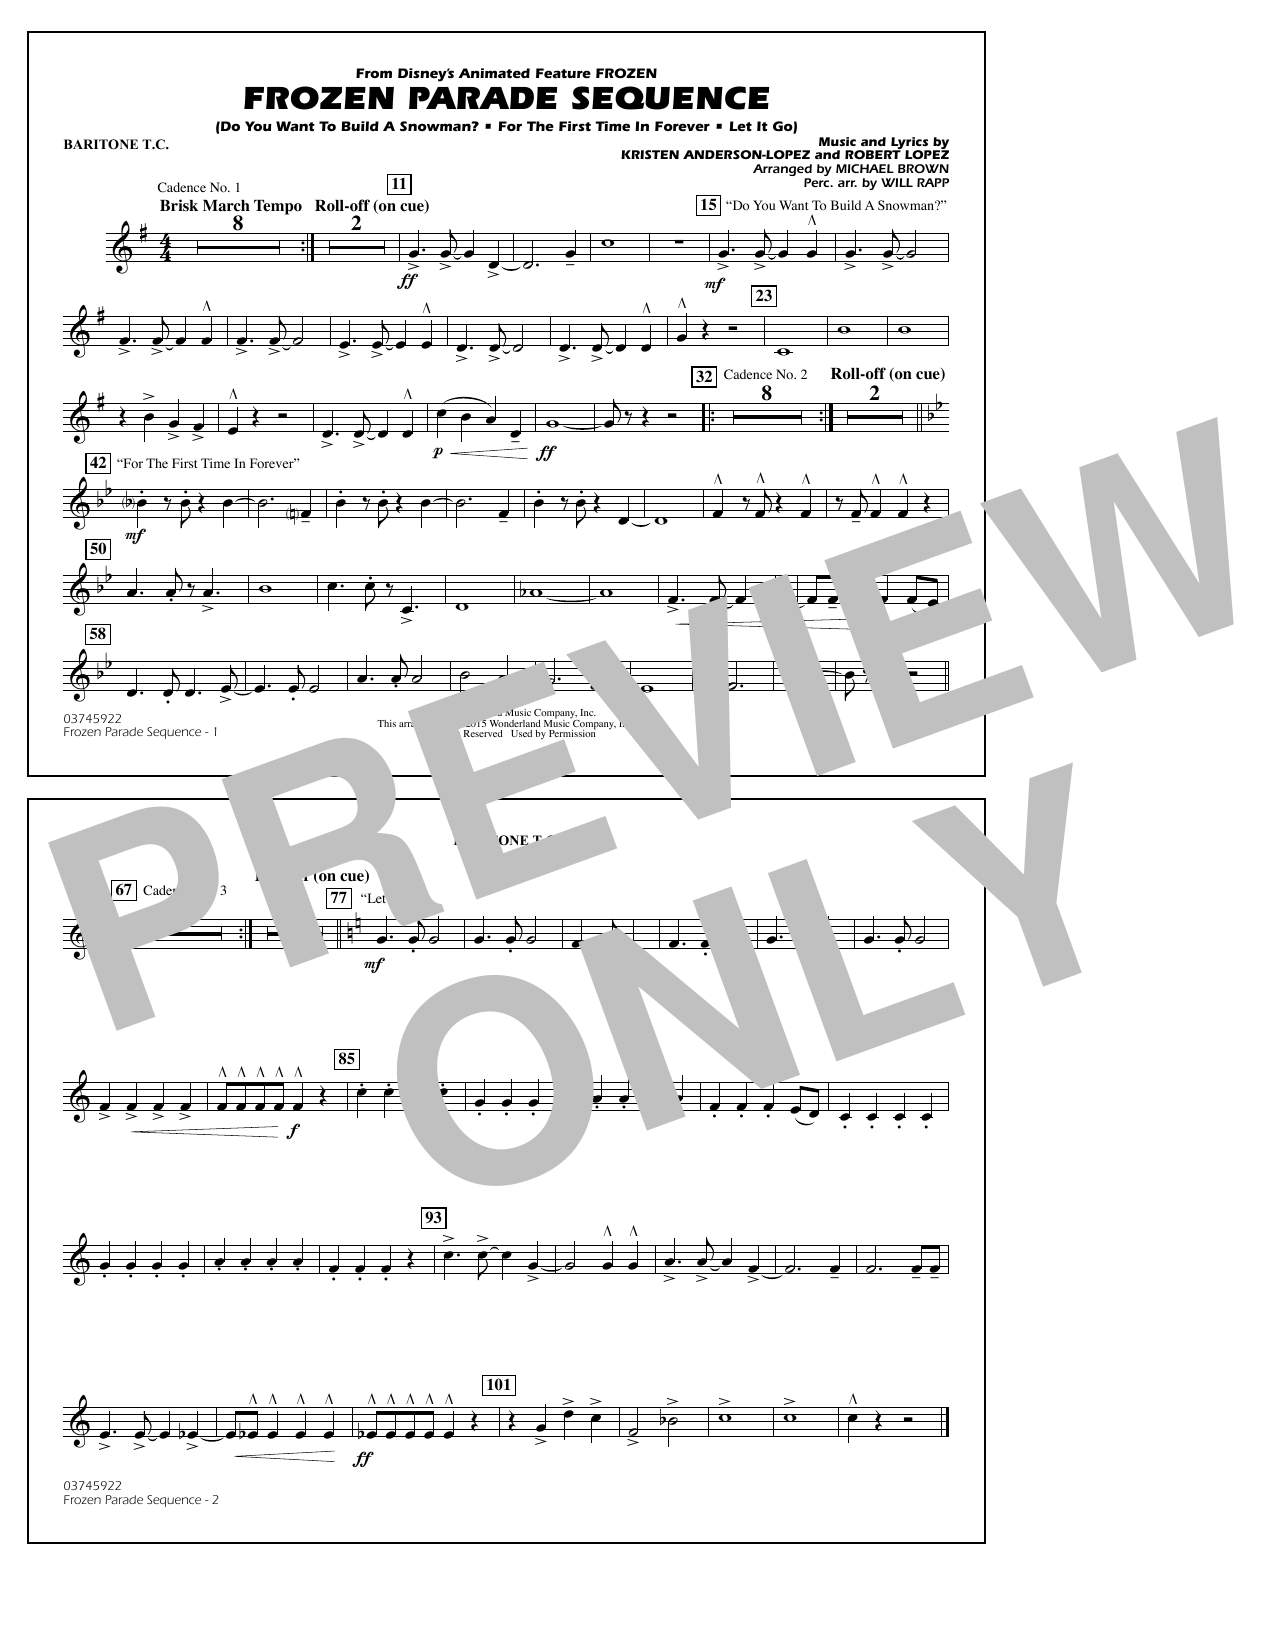 Michael Brown Frozen Parade Sequence - Baritone T.C. sheet music notes and chords